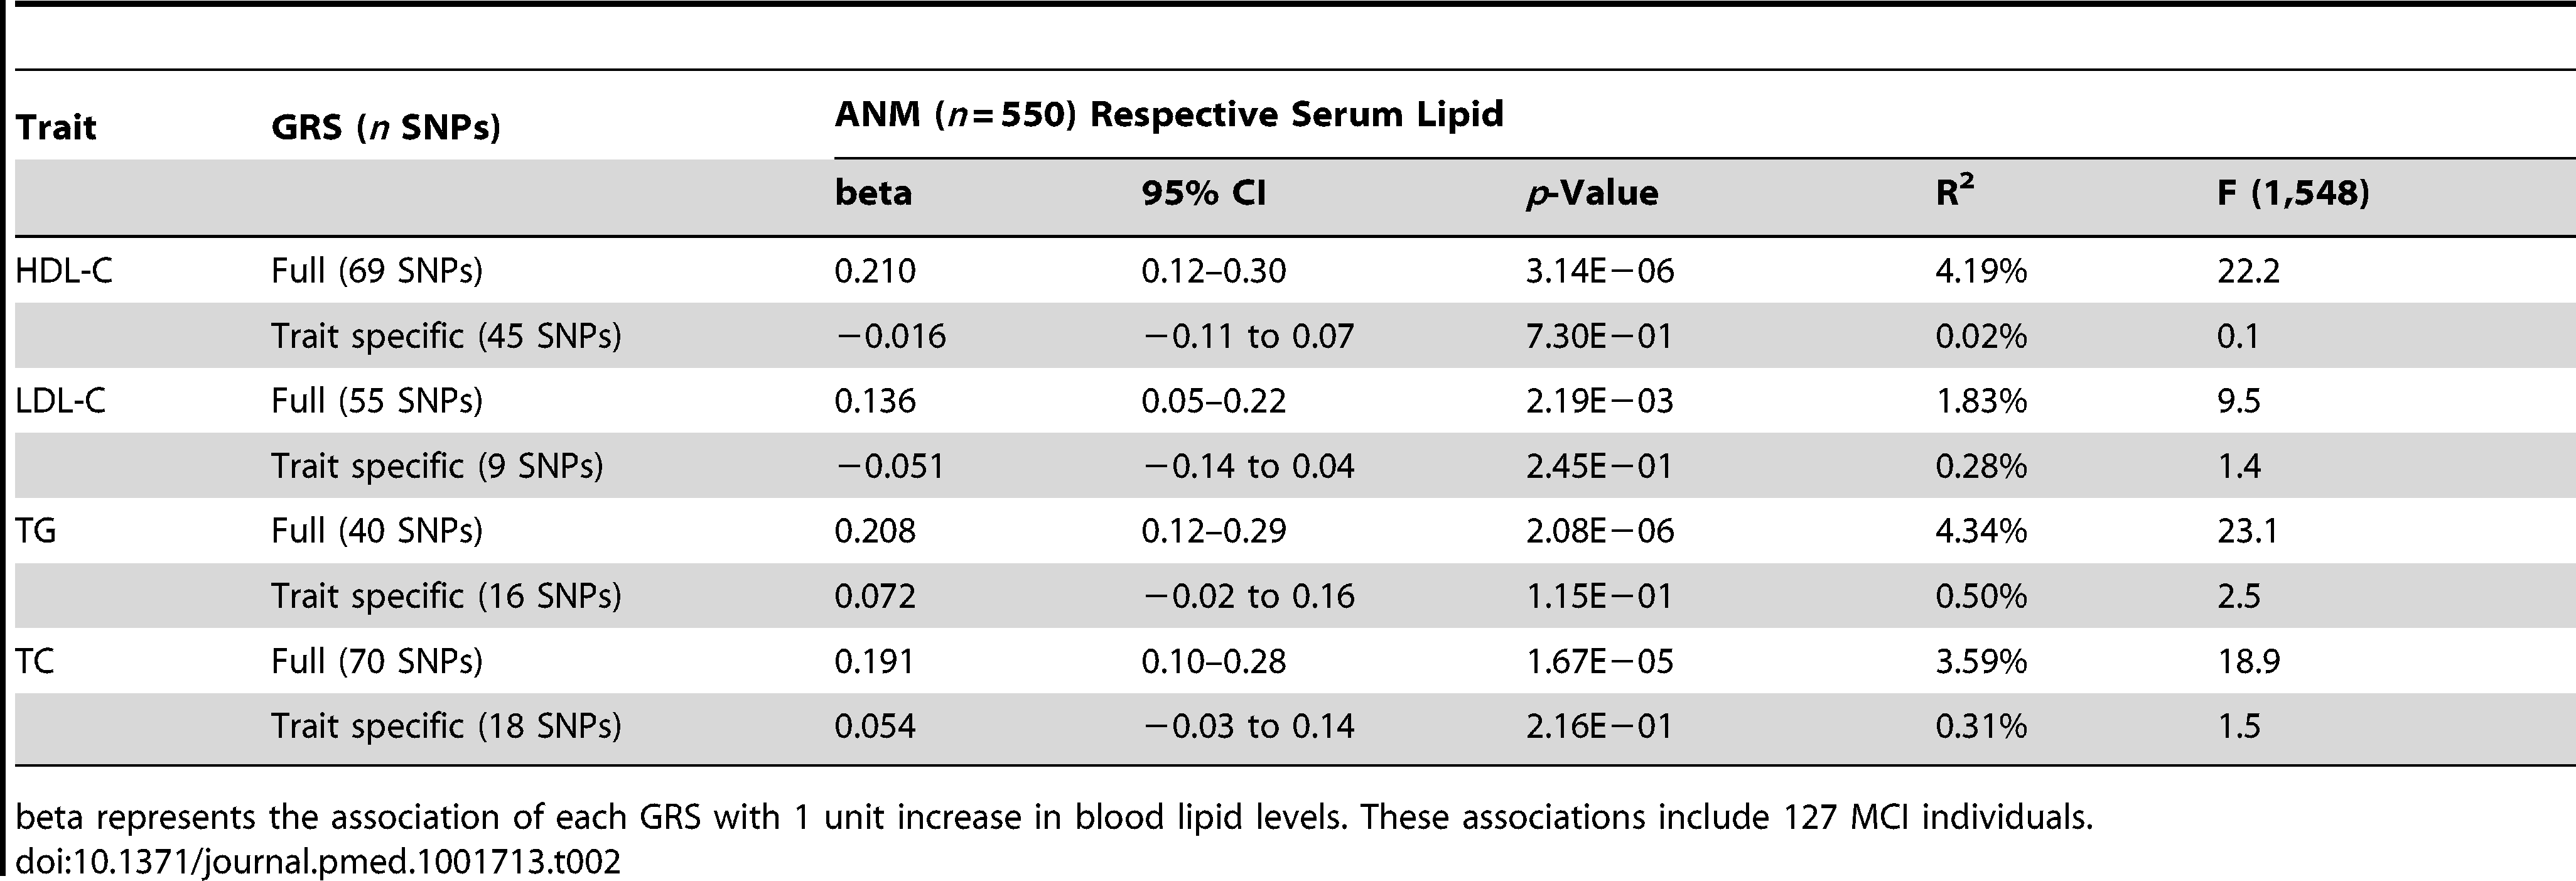 Association of the four full and trait specific GRSs with the respective serum levels in participants of the ANM cohort.